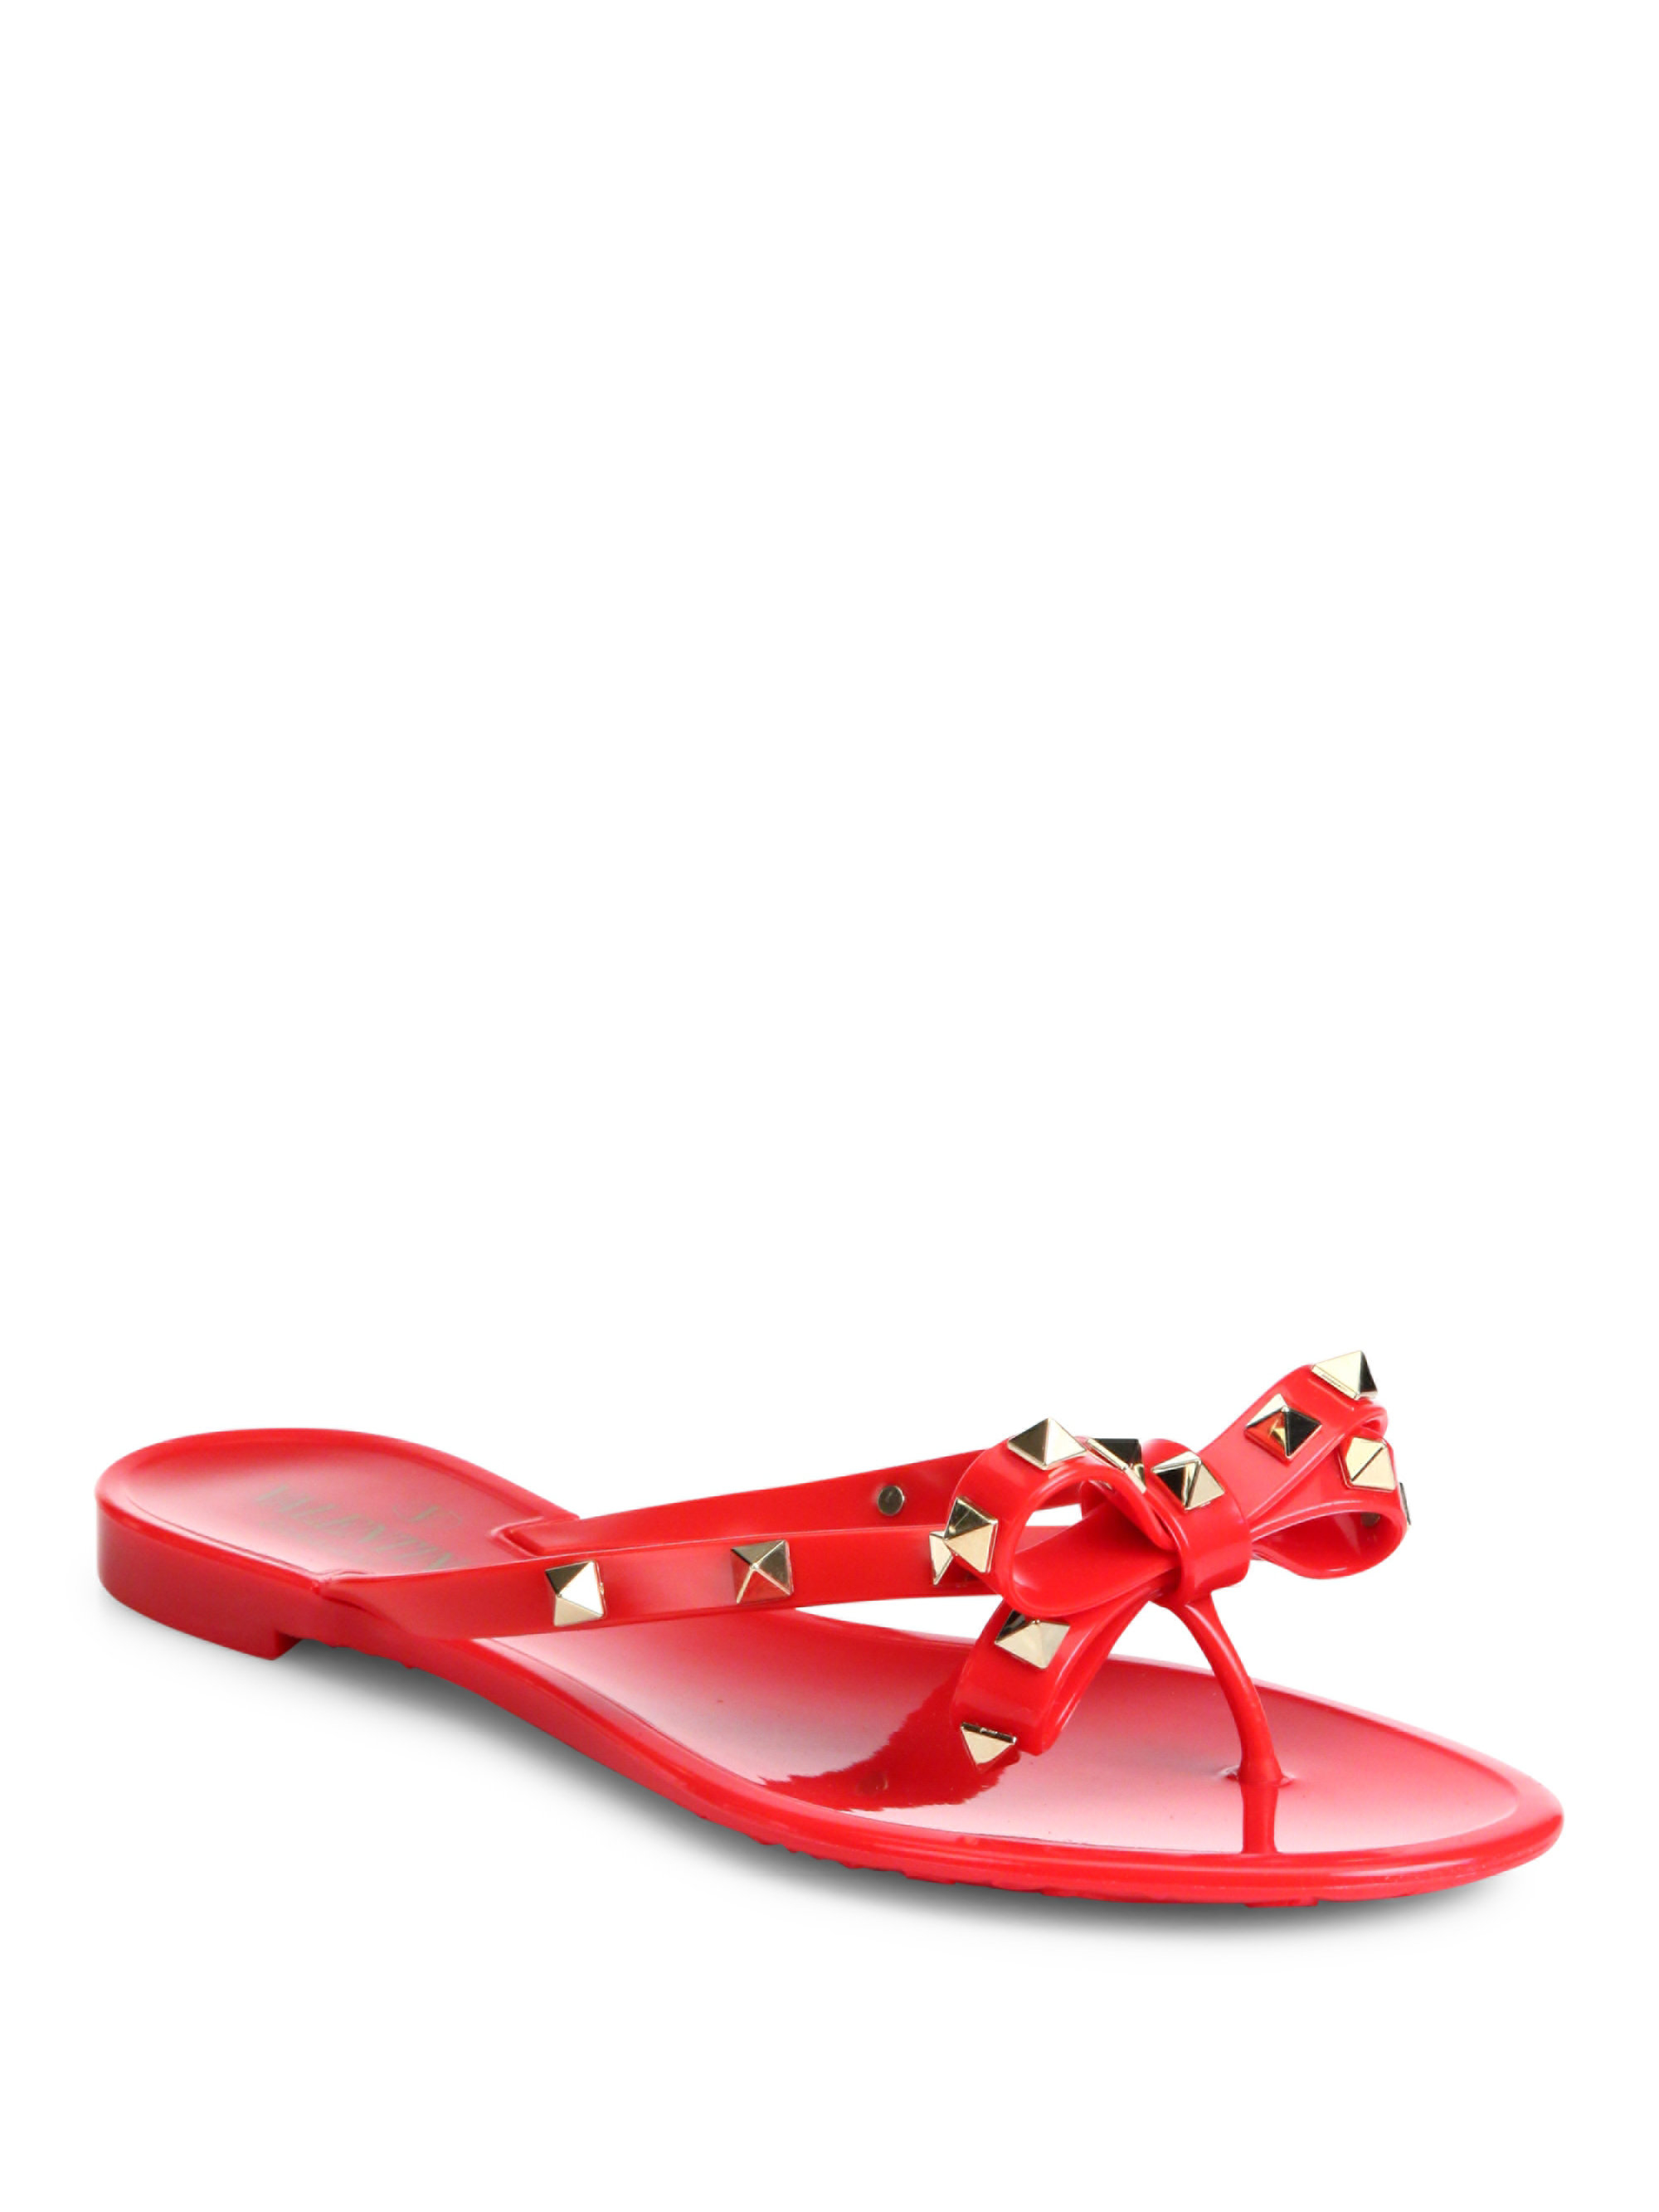 Valentino Rockstud Jelly Sandals In Red Lyst